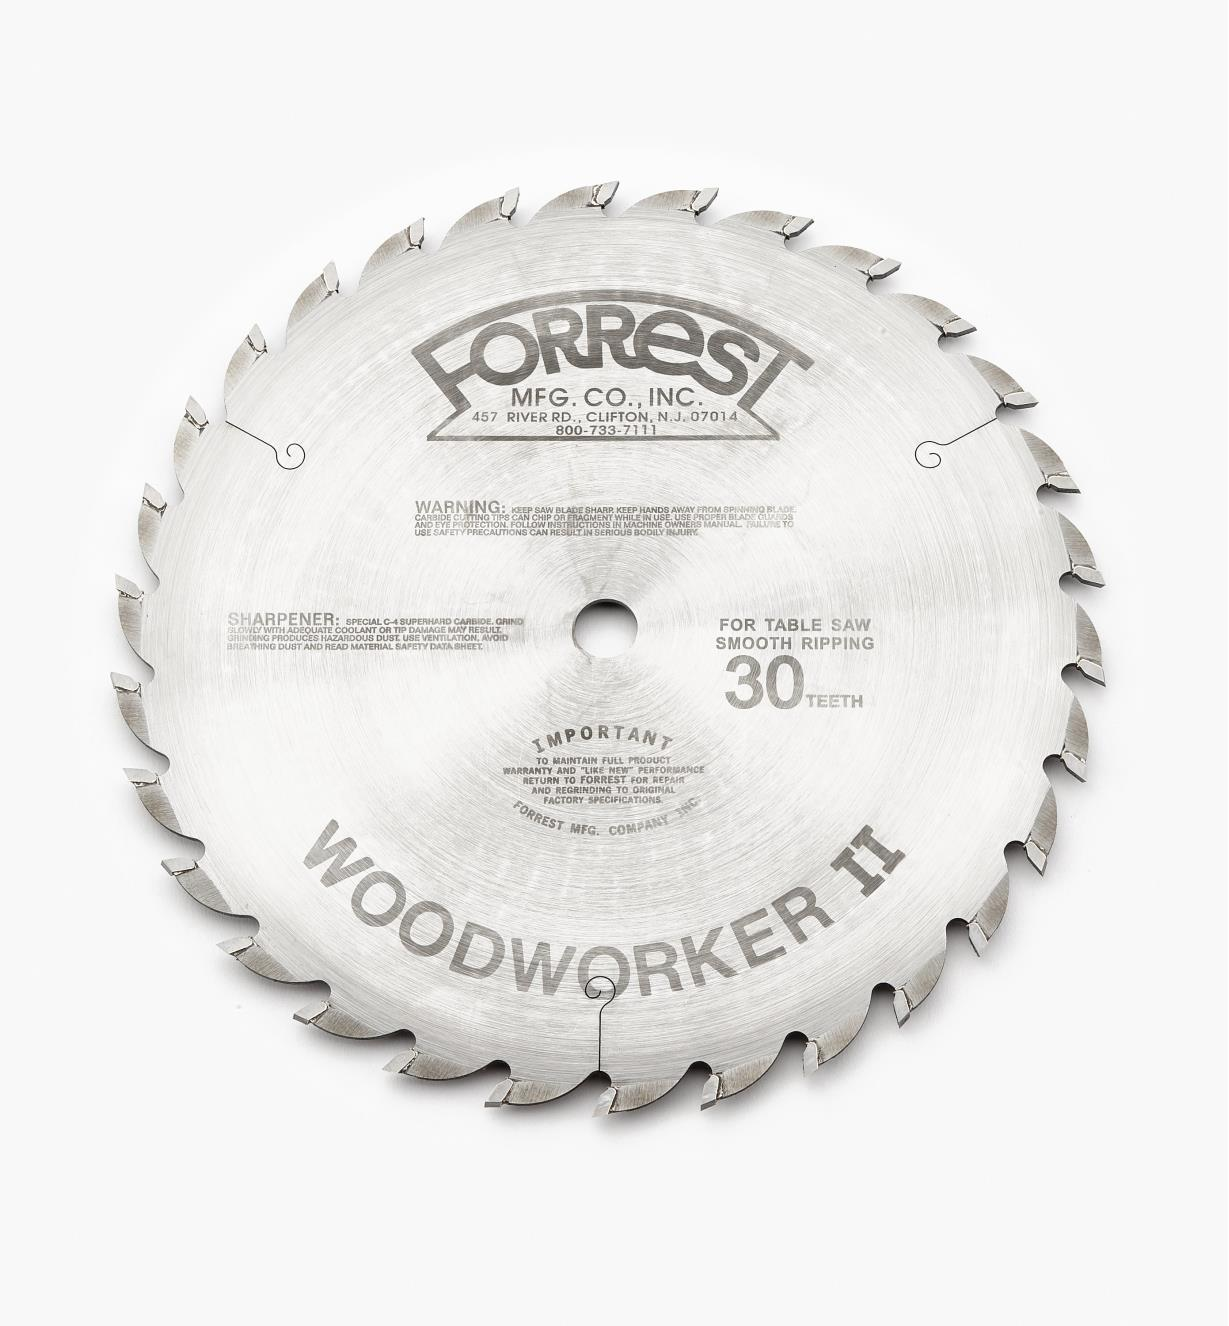 "15T4131 - Woodworker II Blade, 10"" x 30-Tooth, 1/8"" Kerf"